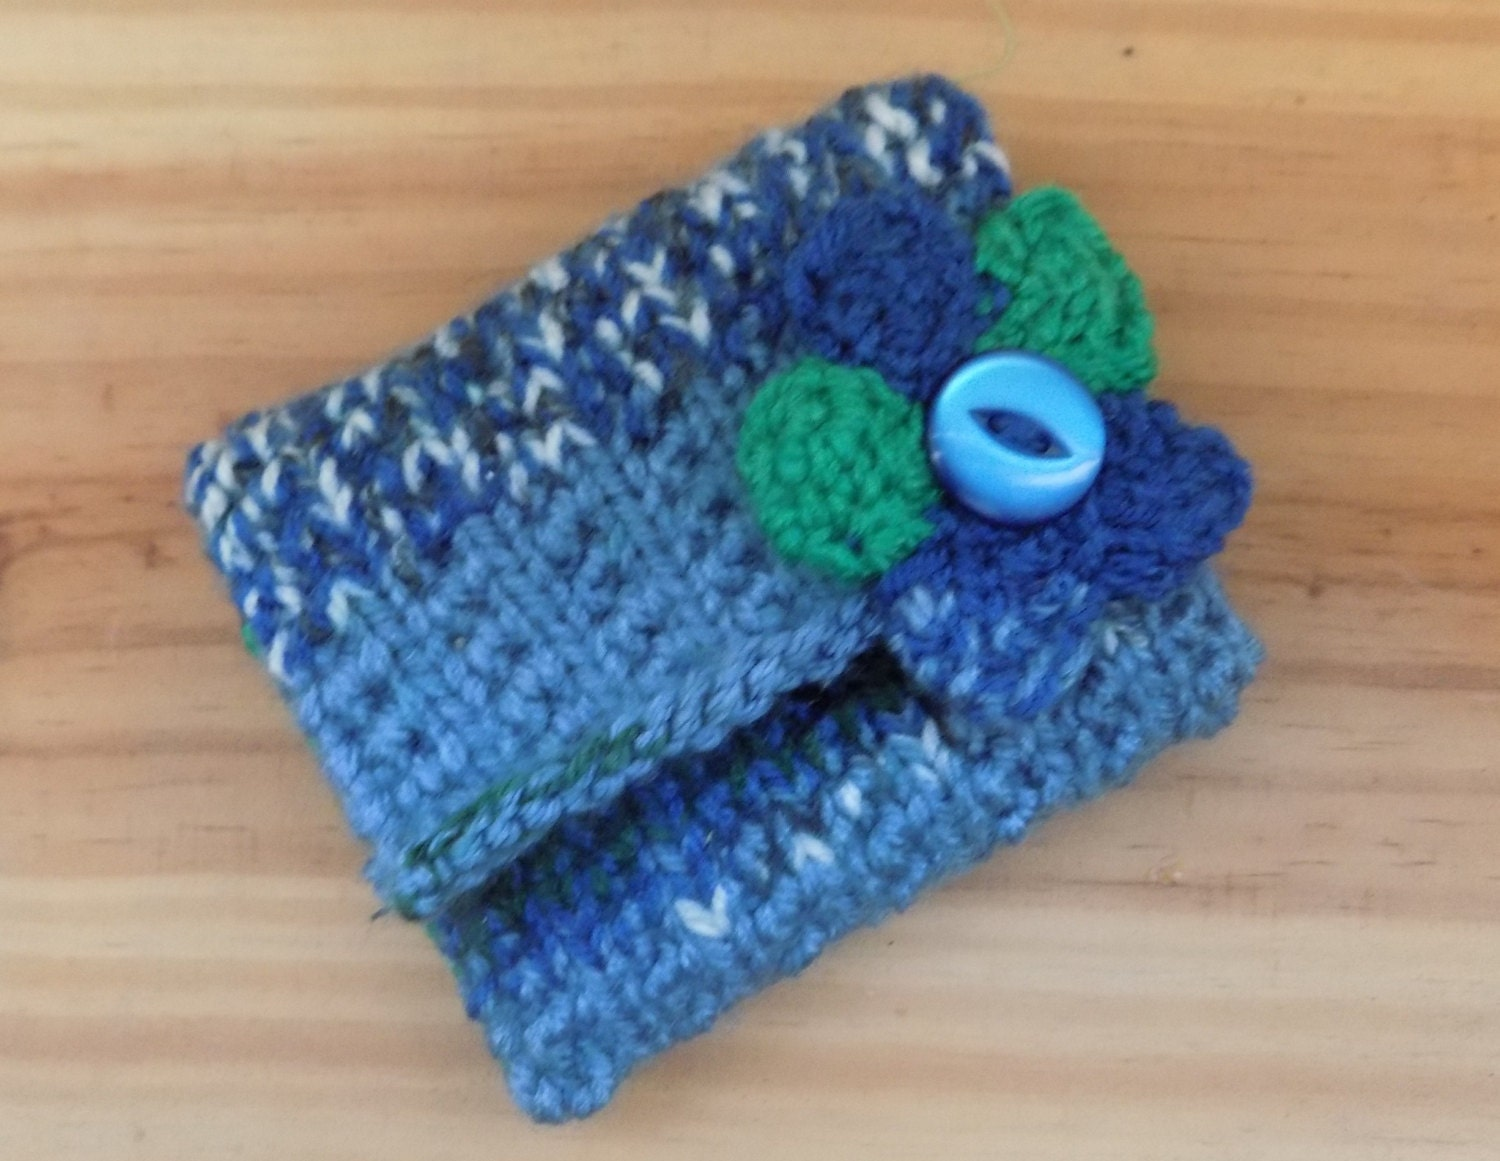 Blue and Green Coin Purse Hand Knitted  Purse  with Decorative Flower